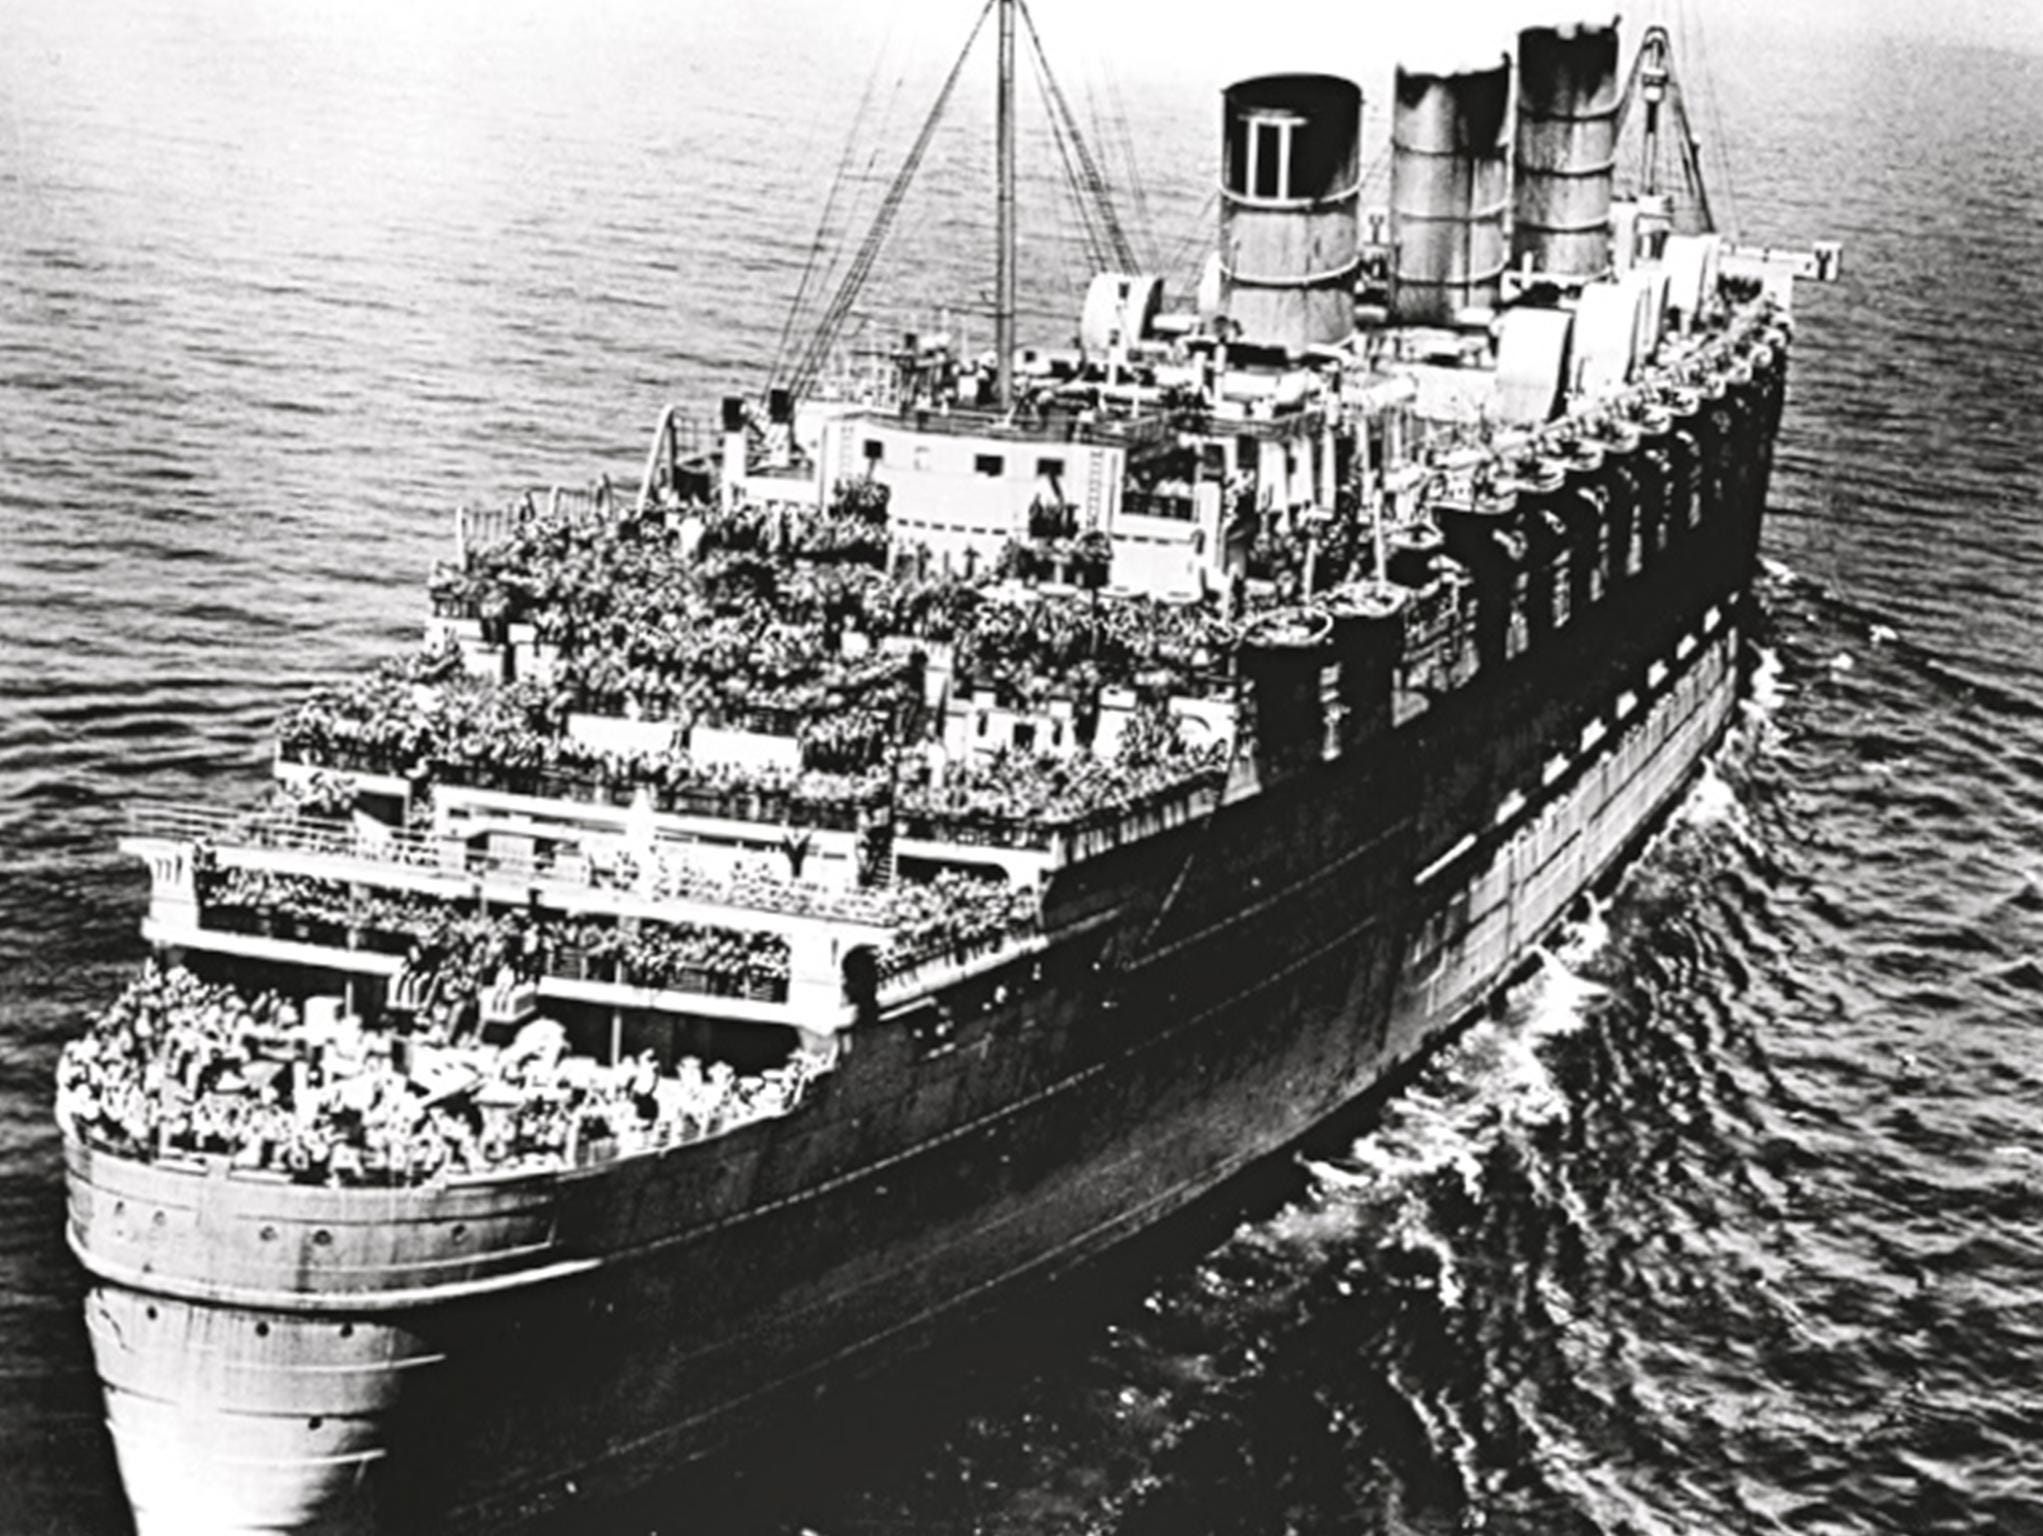 Hitler offered the Iron Cross and a $250,000 reward to the U-boat captain that could sink either of the Queens. Fortunately, that reward would go unclaimed, although the Queen Mary did have a tragic mishap when it rammed and sank the cruiser HMS Curacao off the coast of Ireland with a loss of 338 lives.